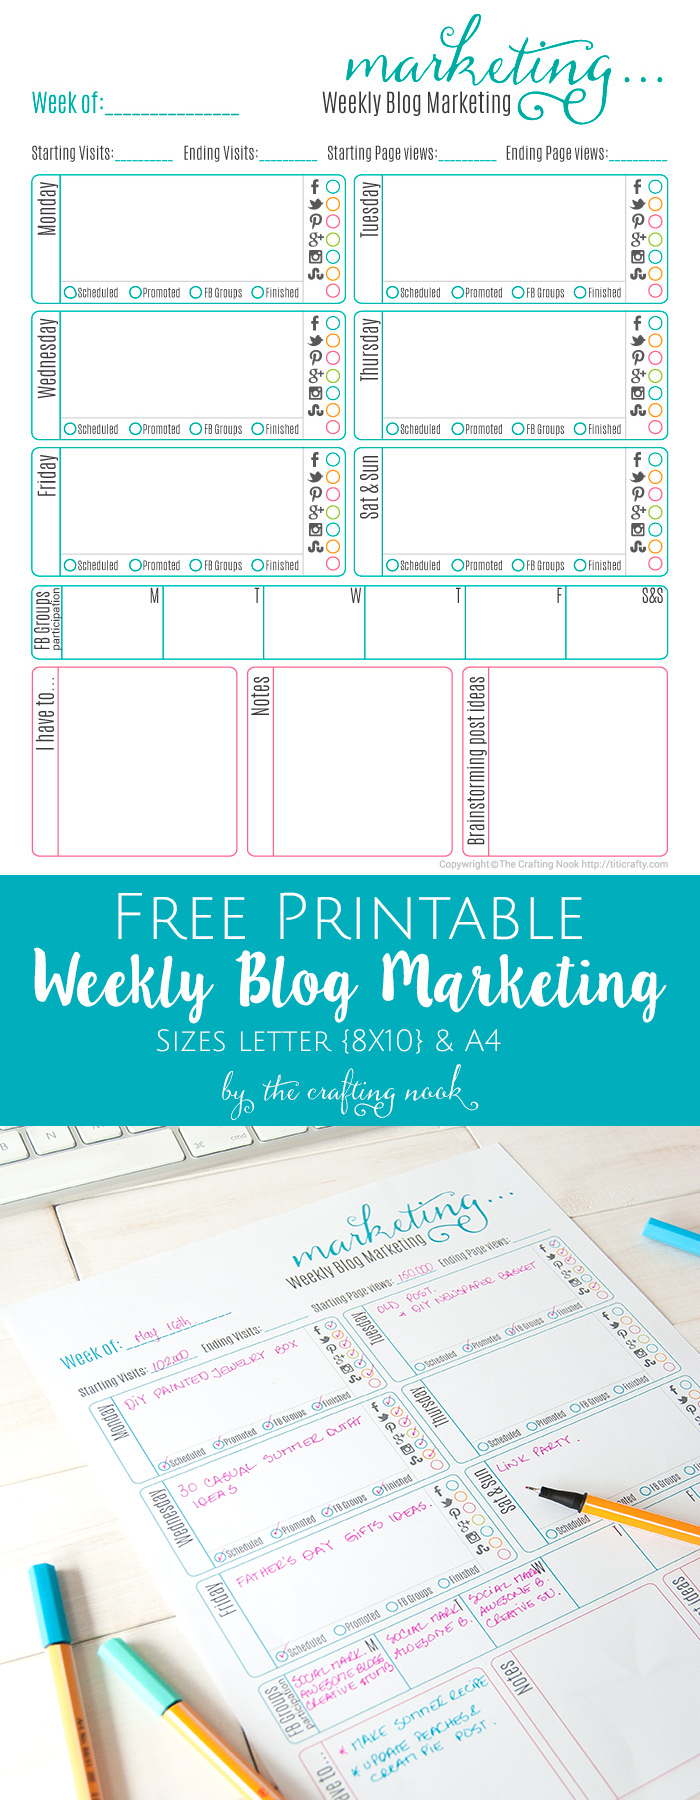 Weekly Blog Marketing Free Printable